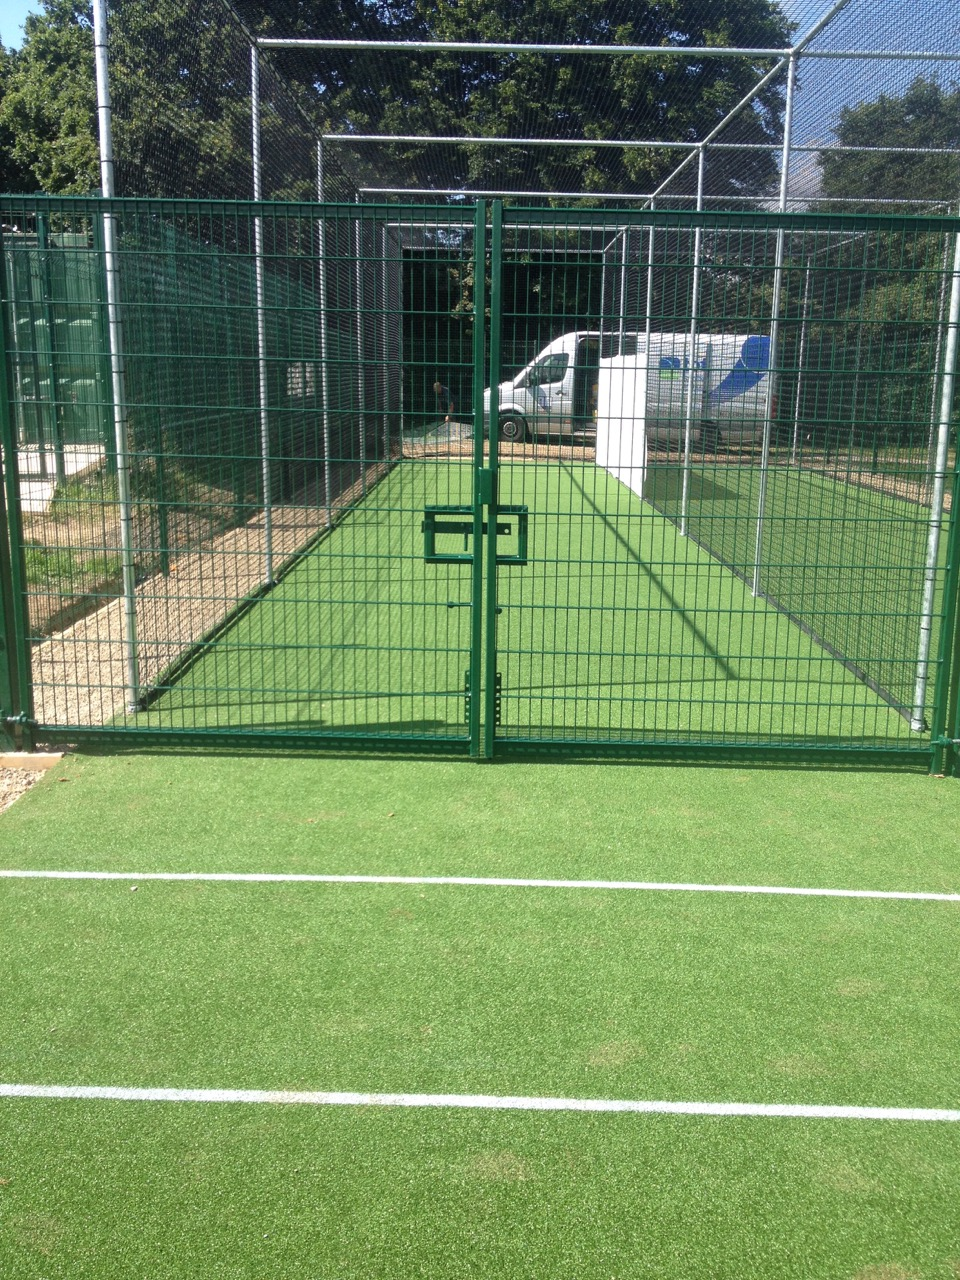 Tp5t Synthetic Cricket Pitch System Total Play